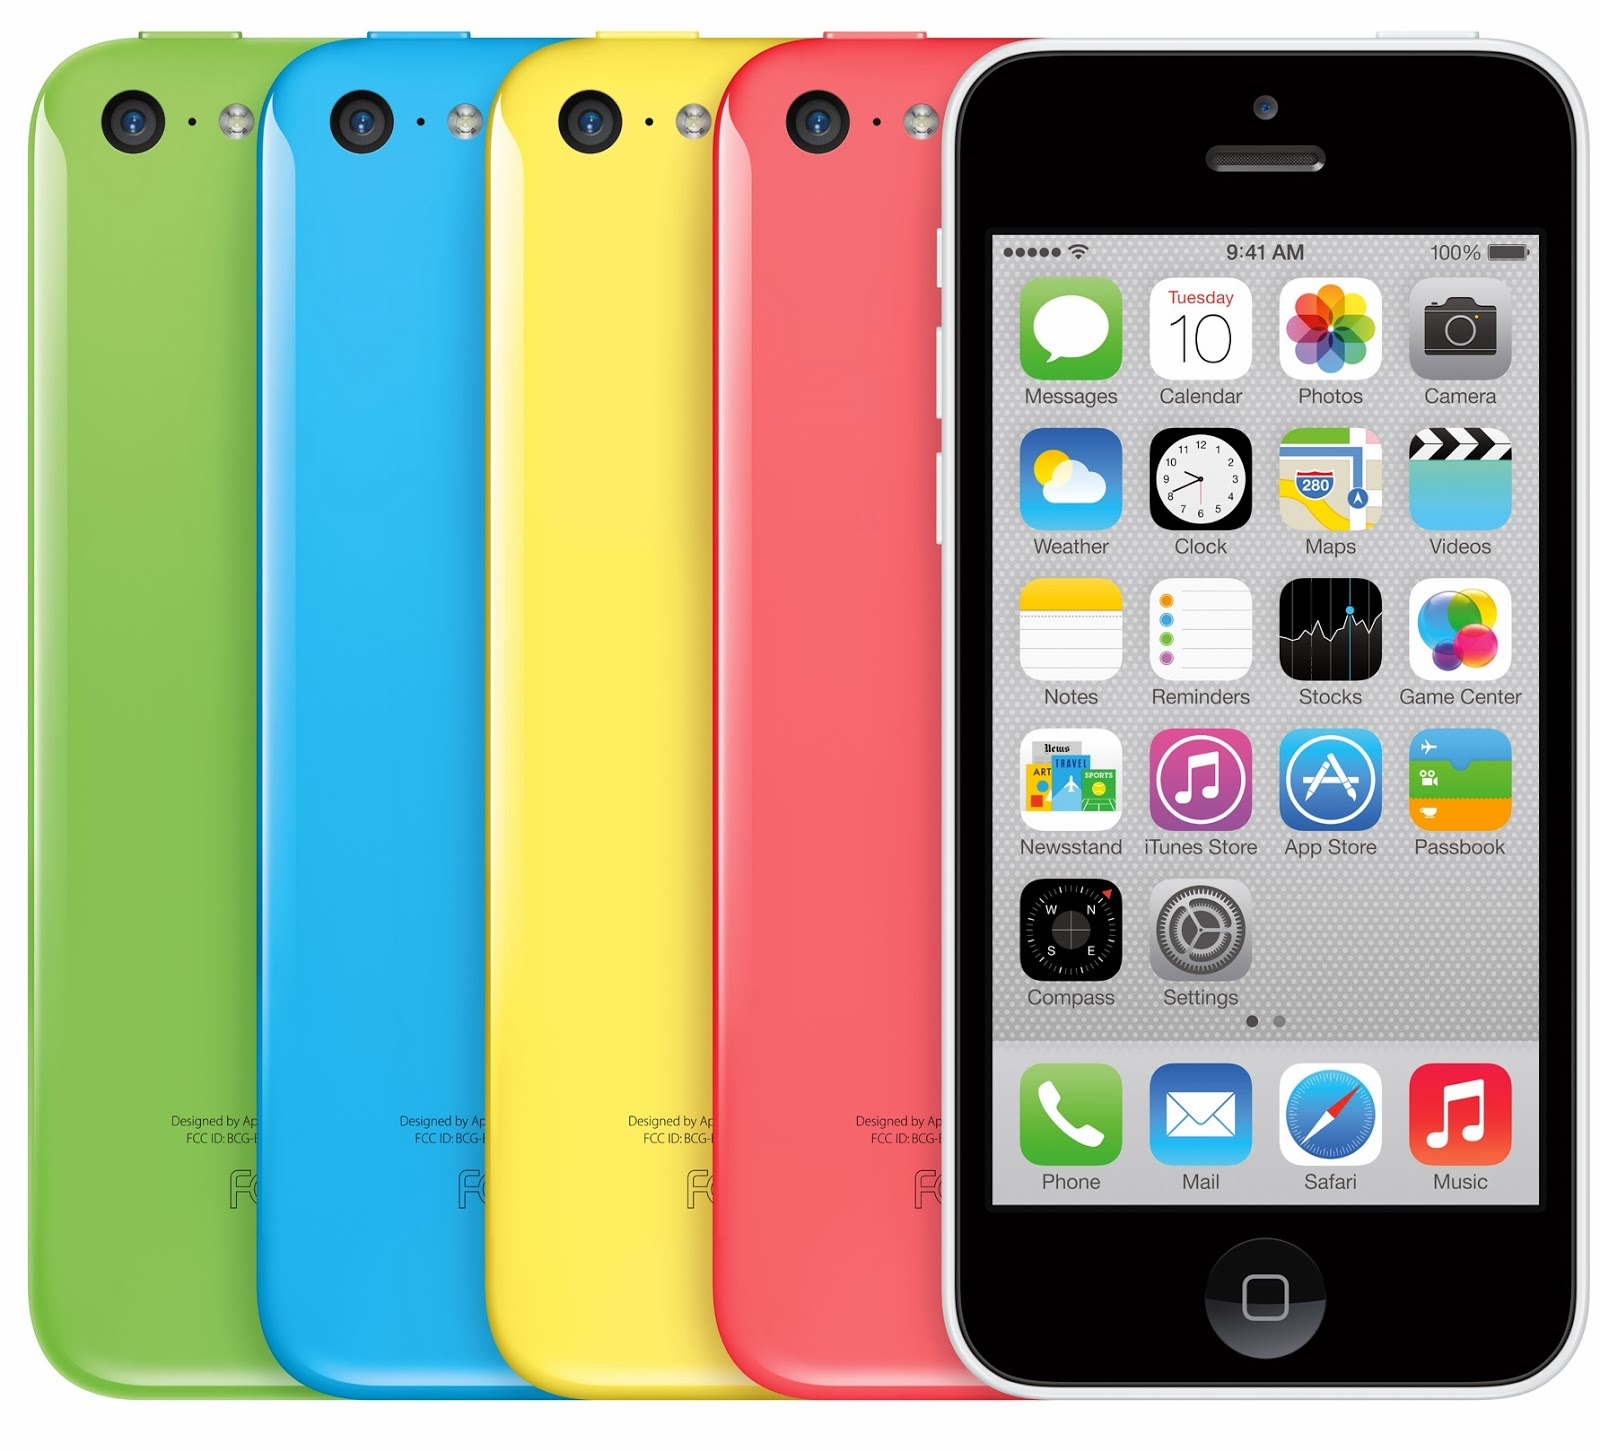 Get iPhone 5s and iPhone 5c at Php 1799 and Php 1349 a ...